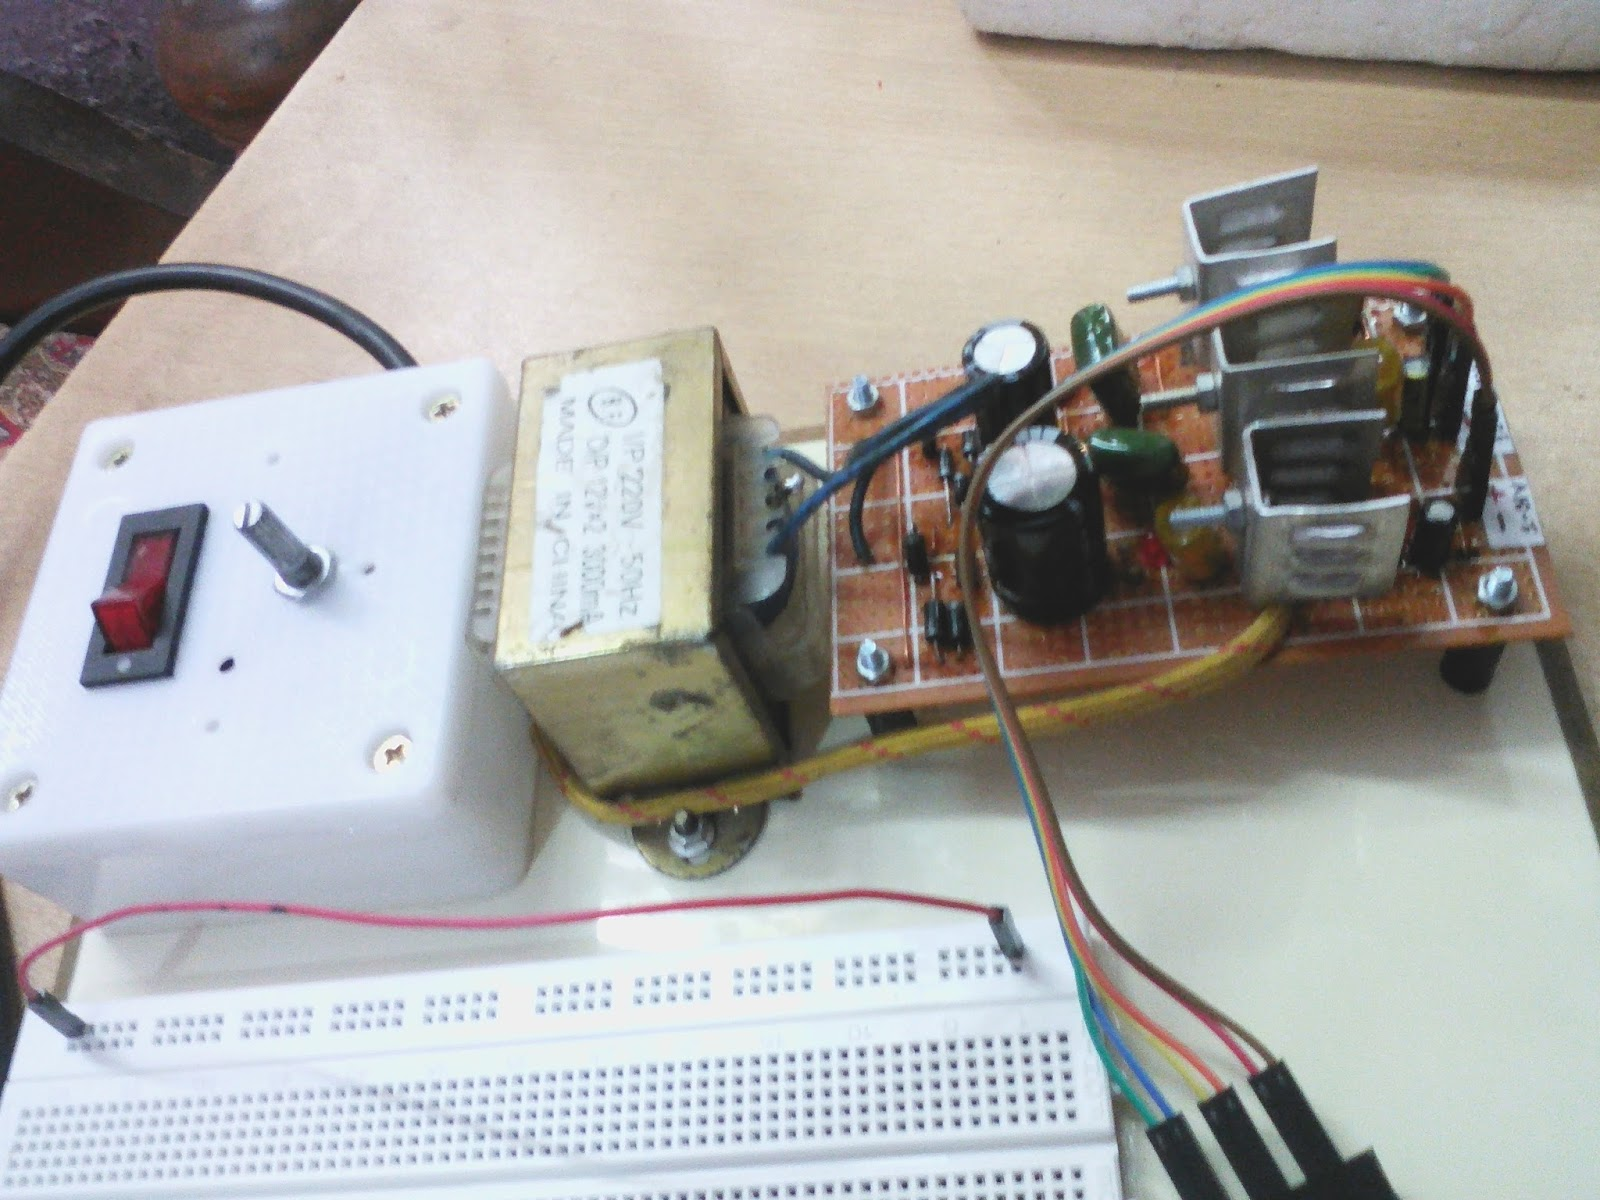 Smart Electronics Bangladesh Sine Wave And Puretrue Inverters Check Out The Diagrams Its Home Made